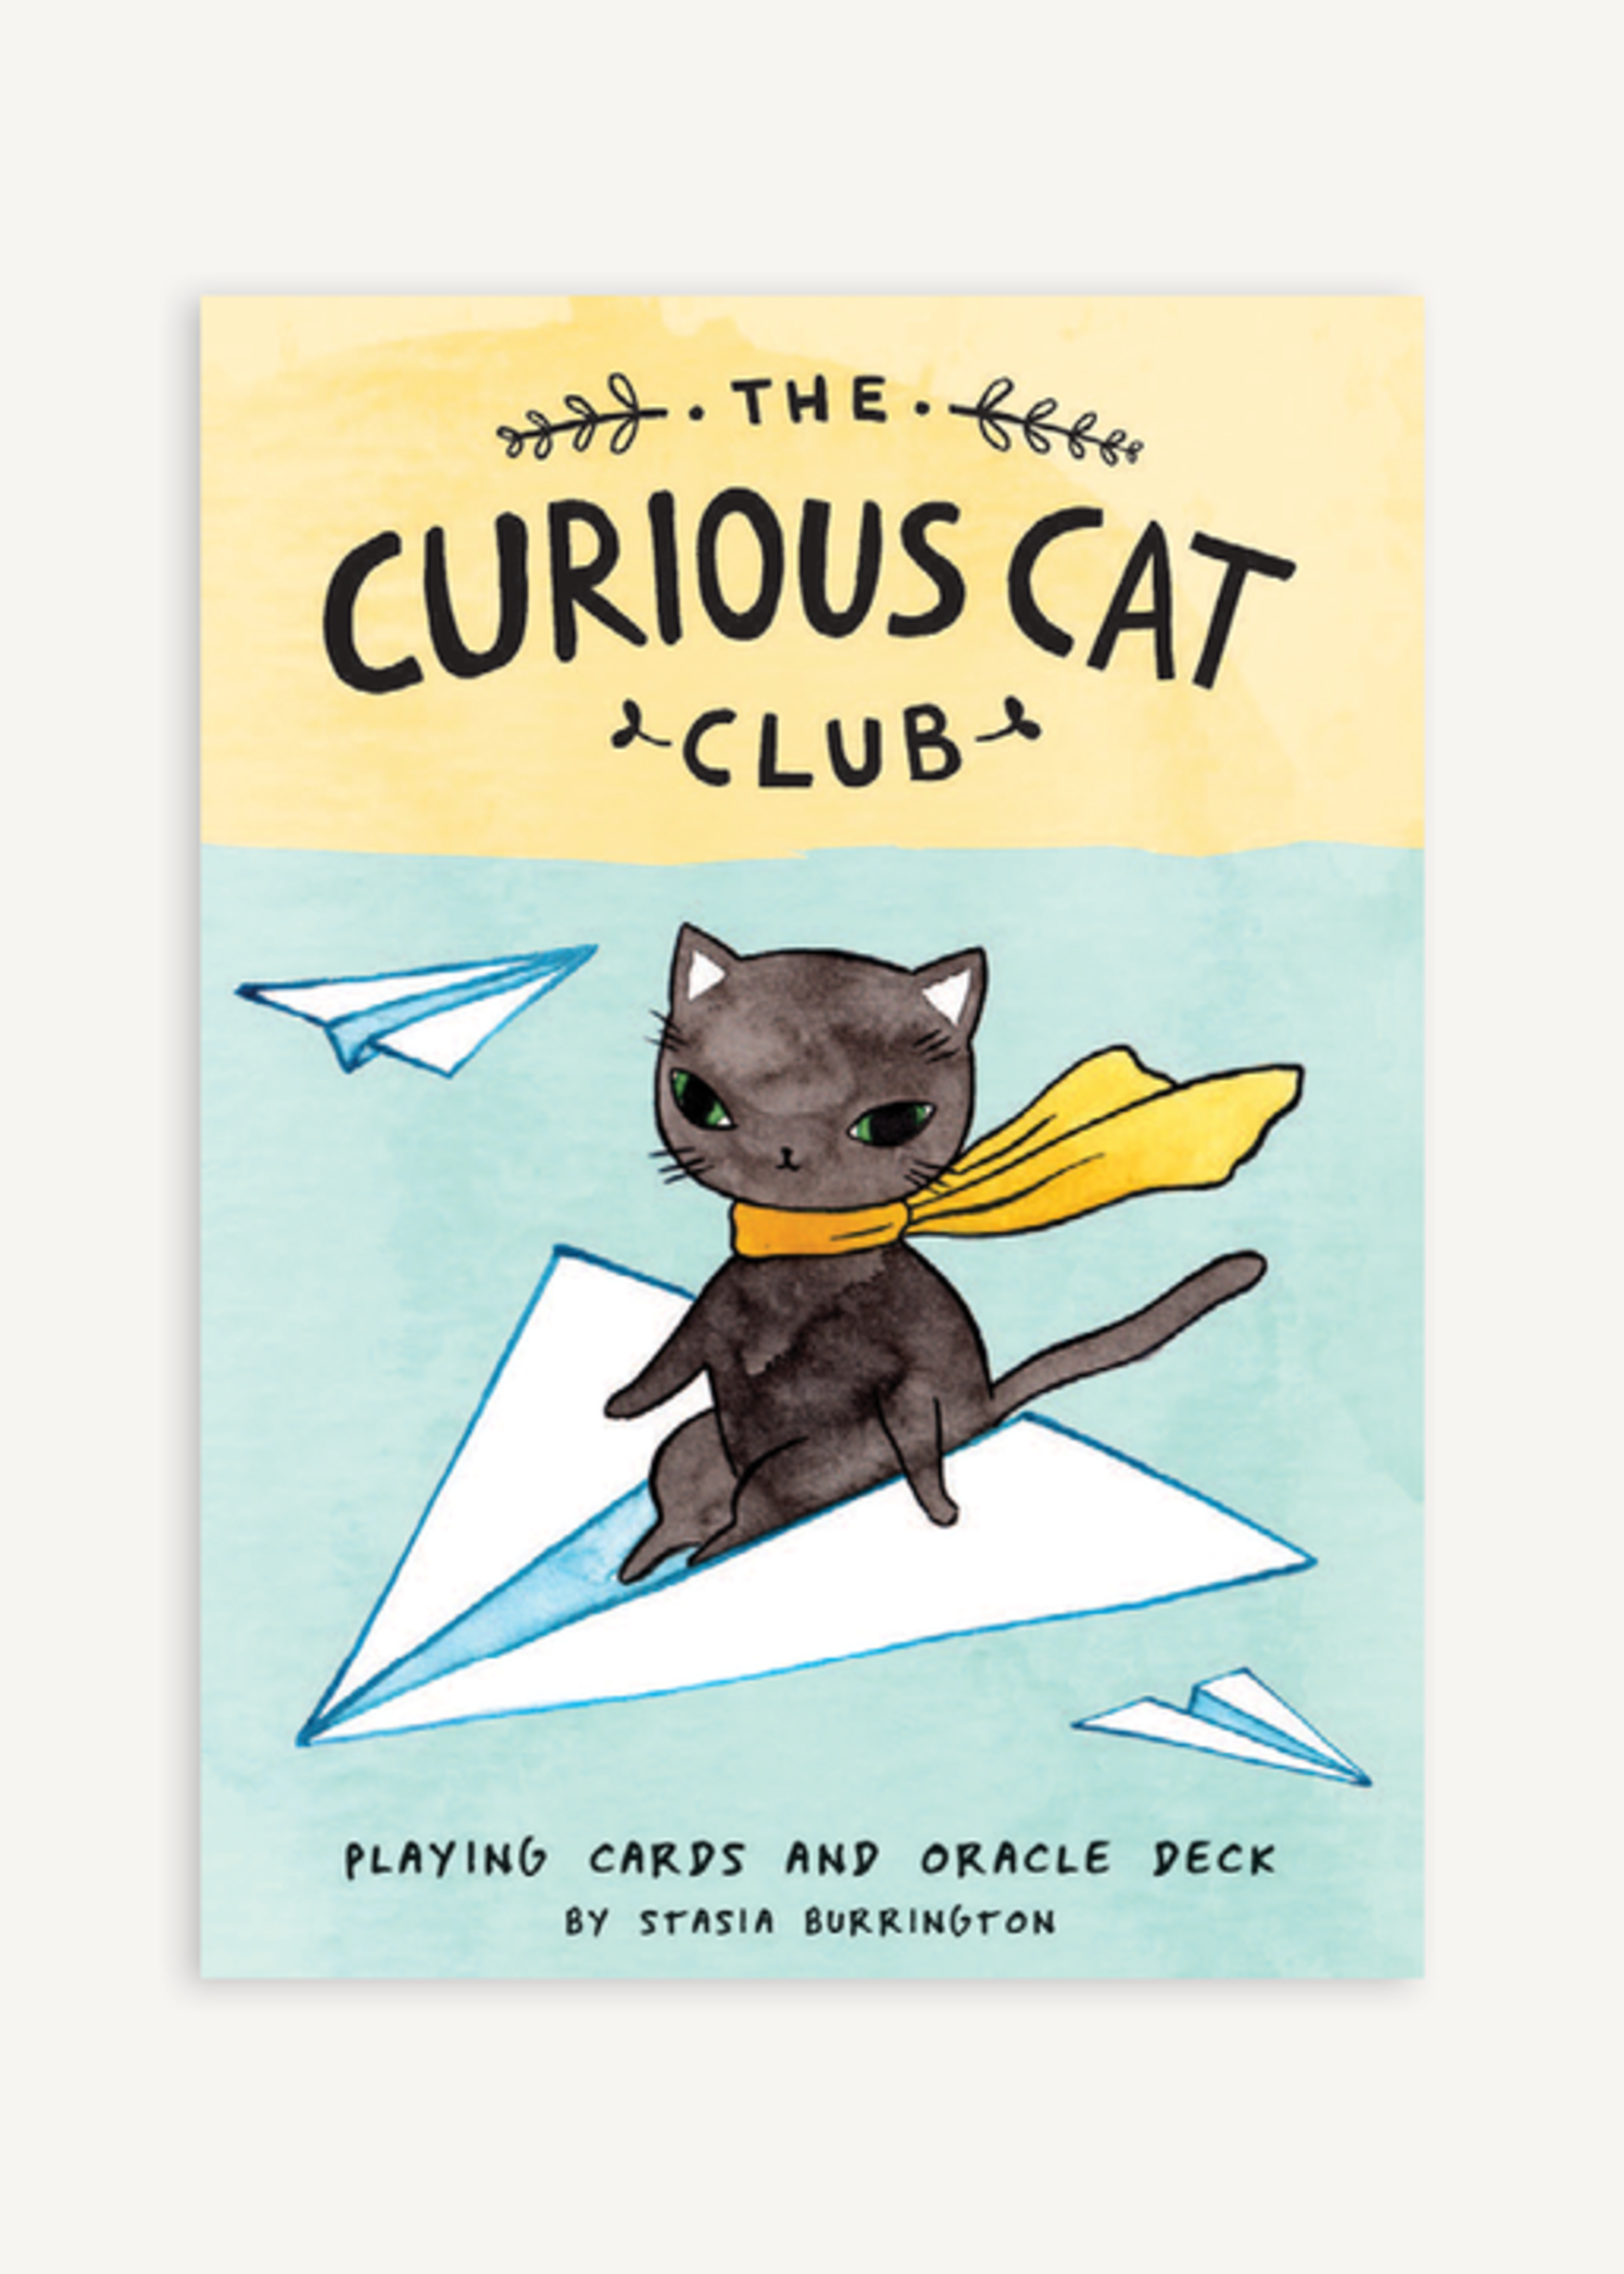 The Curious Cat Playing Cards and Oracle Deck by Stasia Burrington